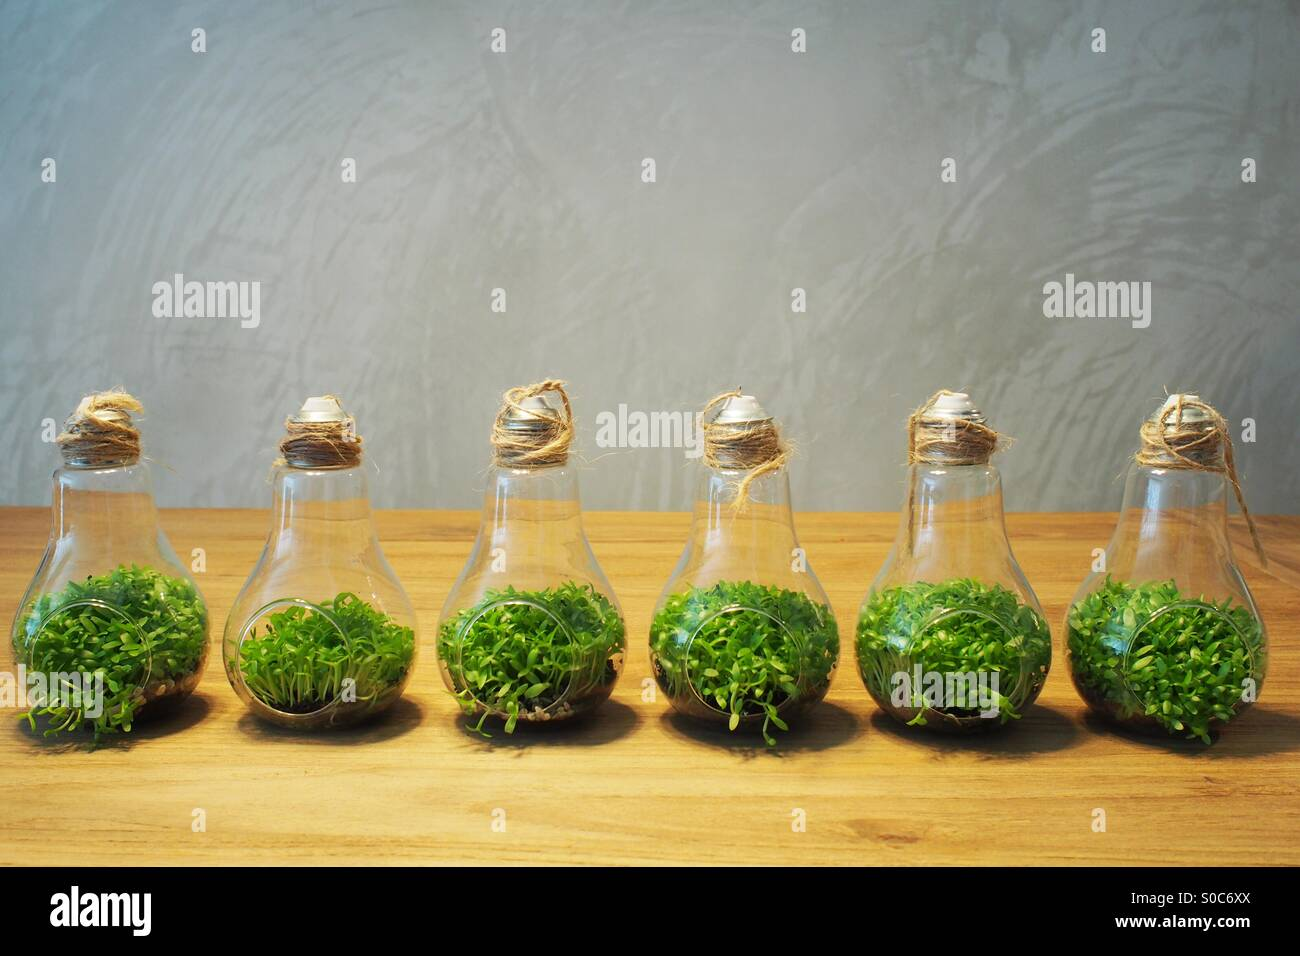 Plantes de l'ampoule. Photo Stock